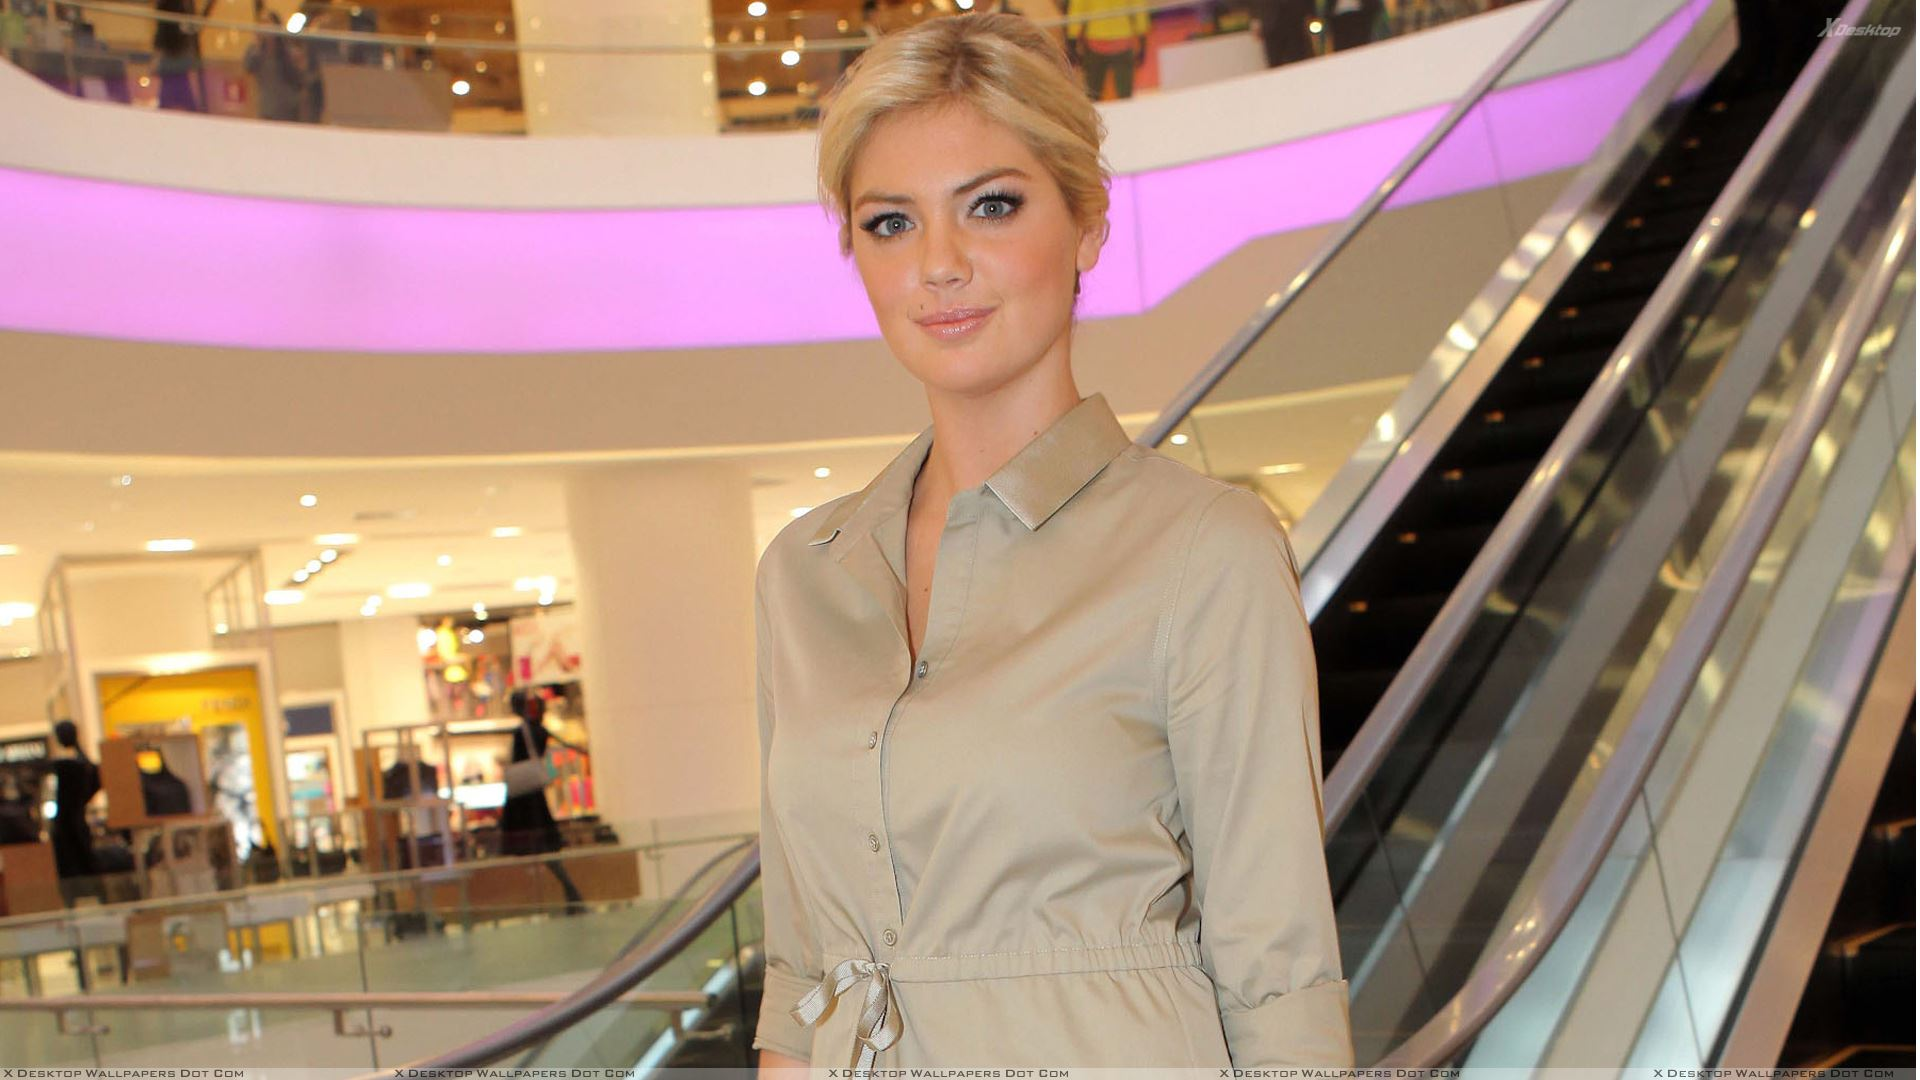 Kate Upton Wallpapers Photos Images In Hd